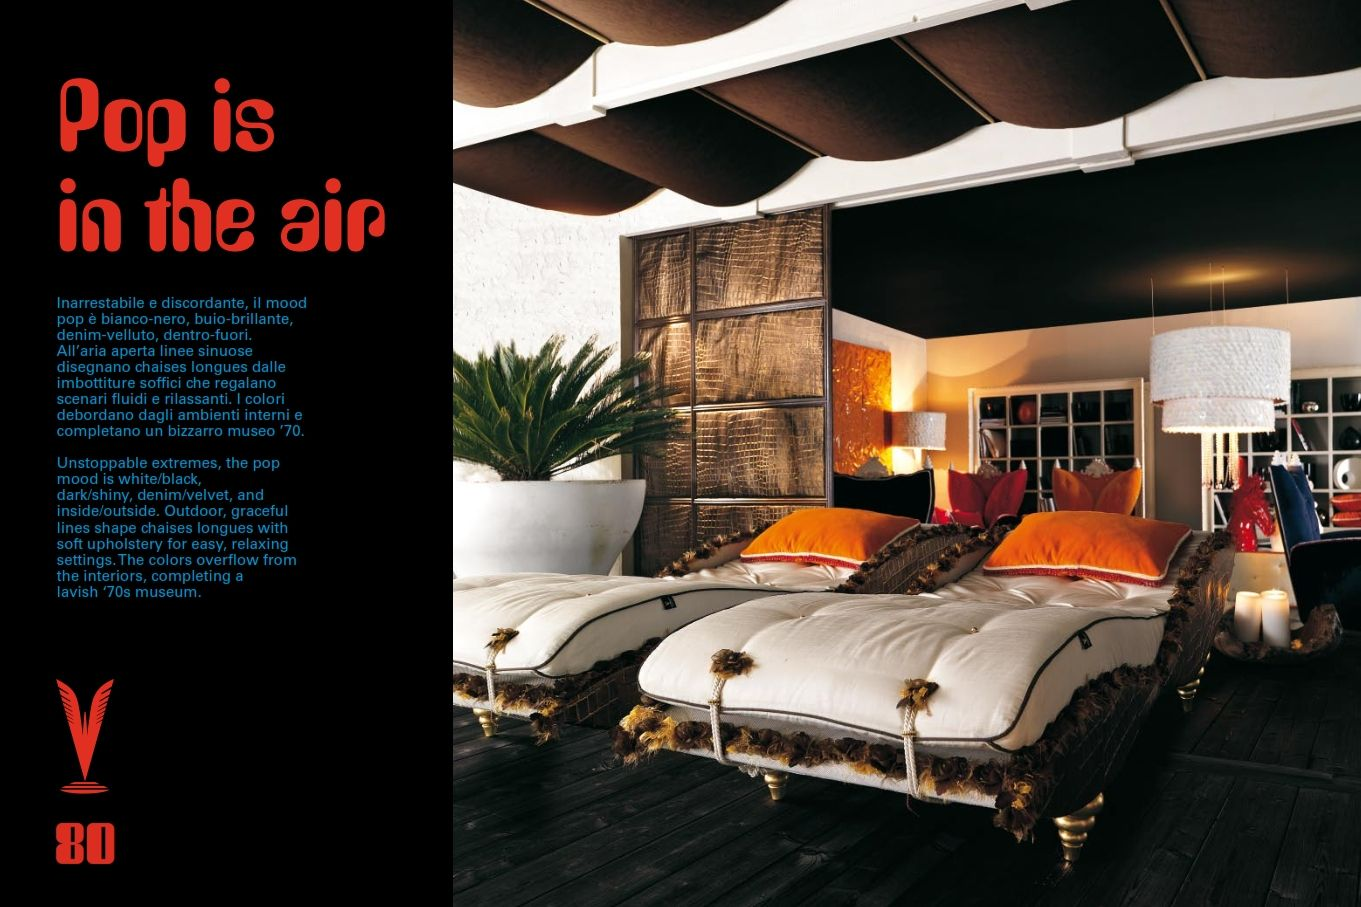 Luxurious Furniture Luxury Upholstered Furniture Alta Moda Pop - Pop-bedroom-design-by-altamoda